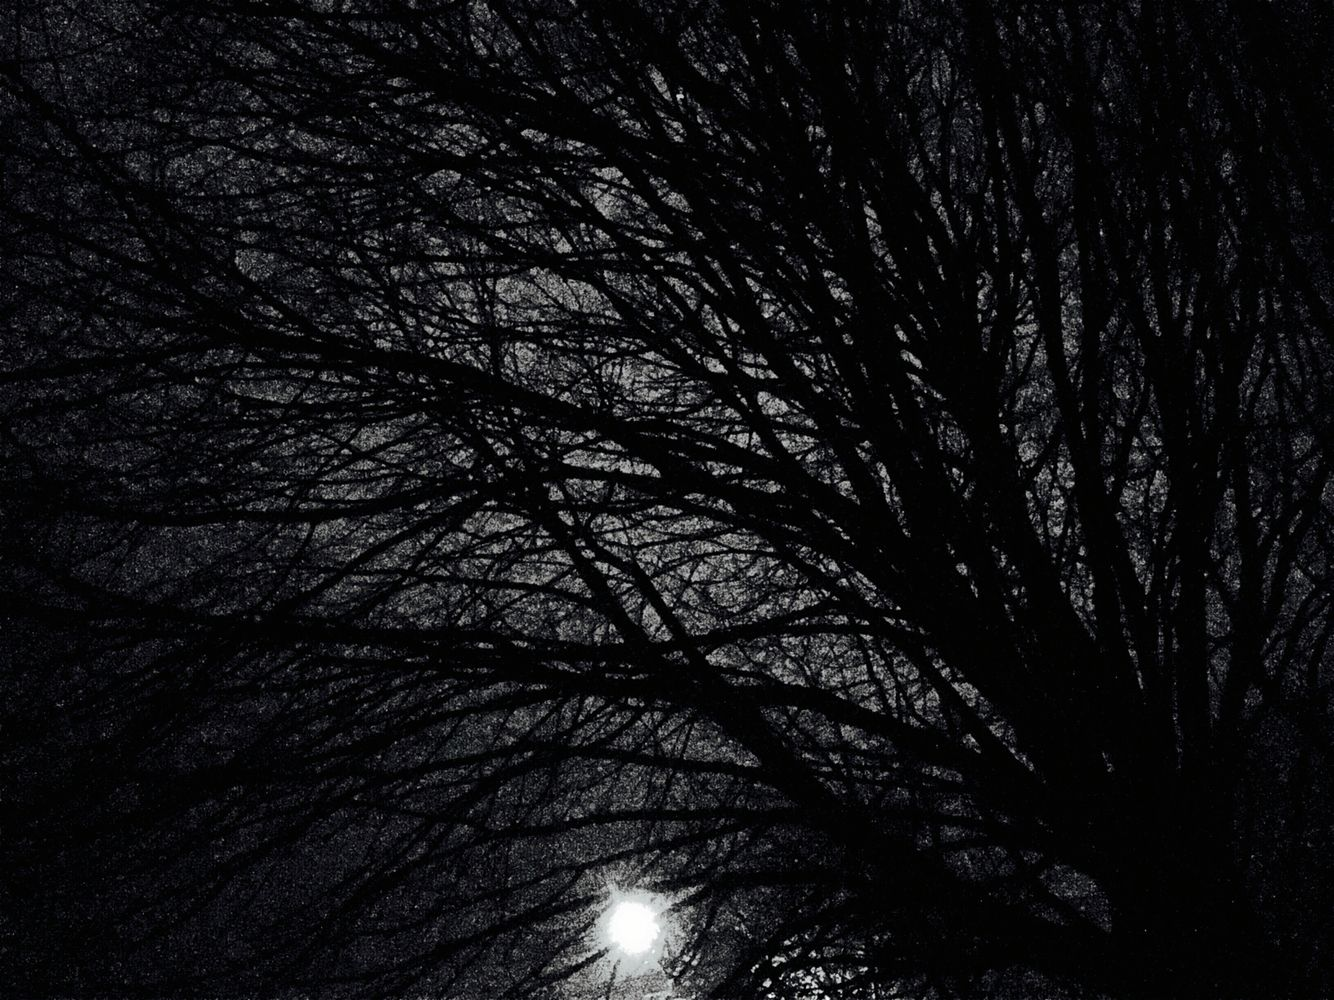 Night and trees